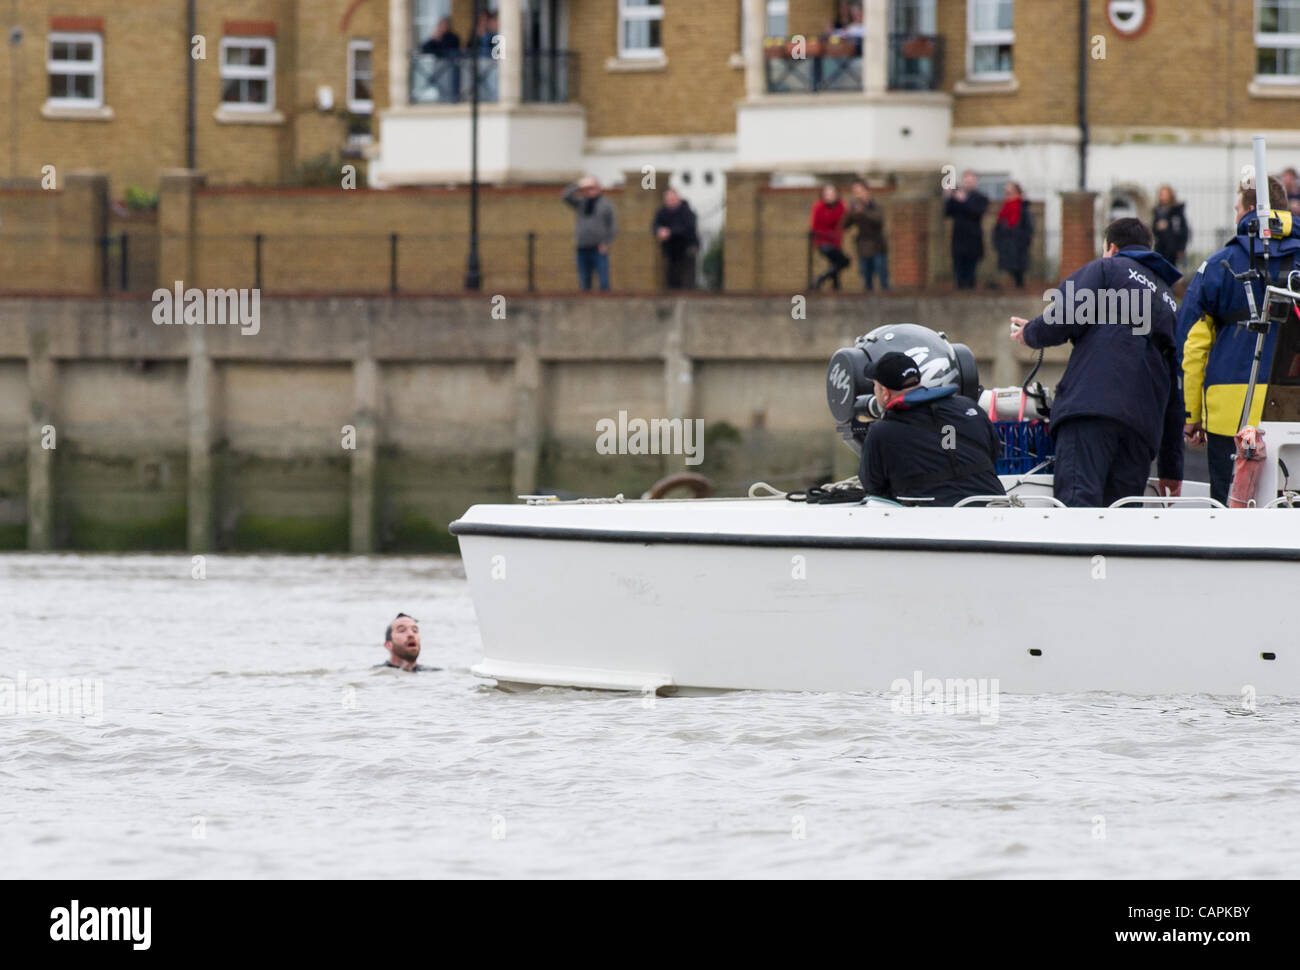 London, UK. 07/04/2012. Man in water halts the 158th Xchanging Oxford & Cambridge Universities Boat Race.   - Stock Image